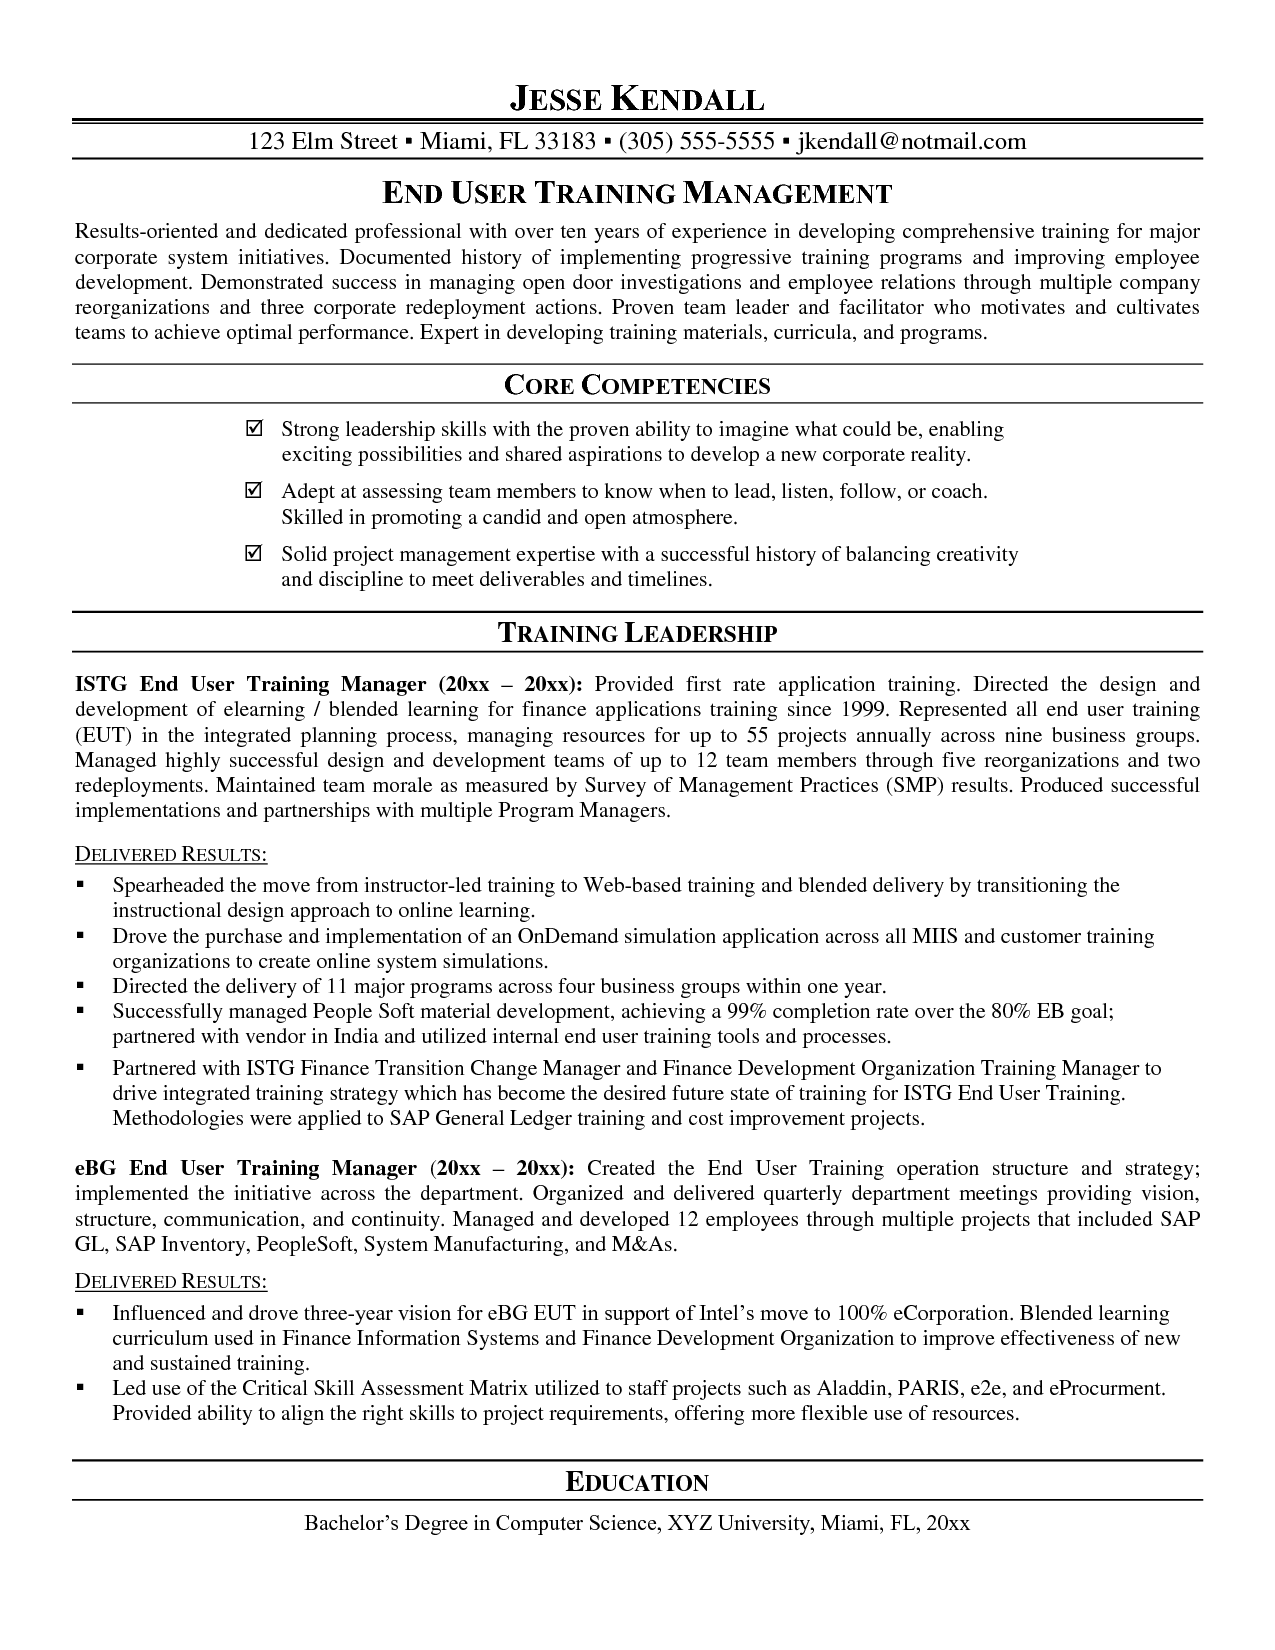 Training Manager Resume - http://www.resumecareer.info/training ...